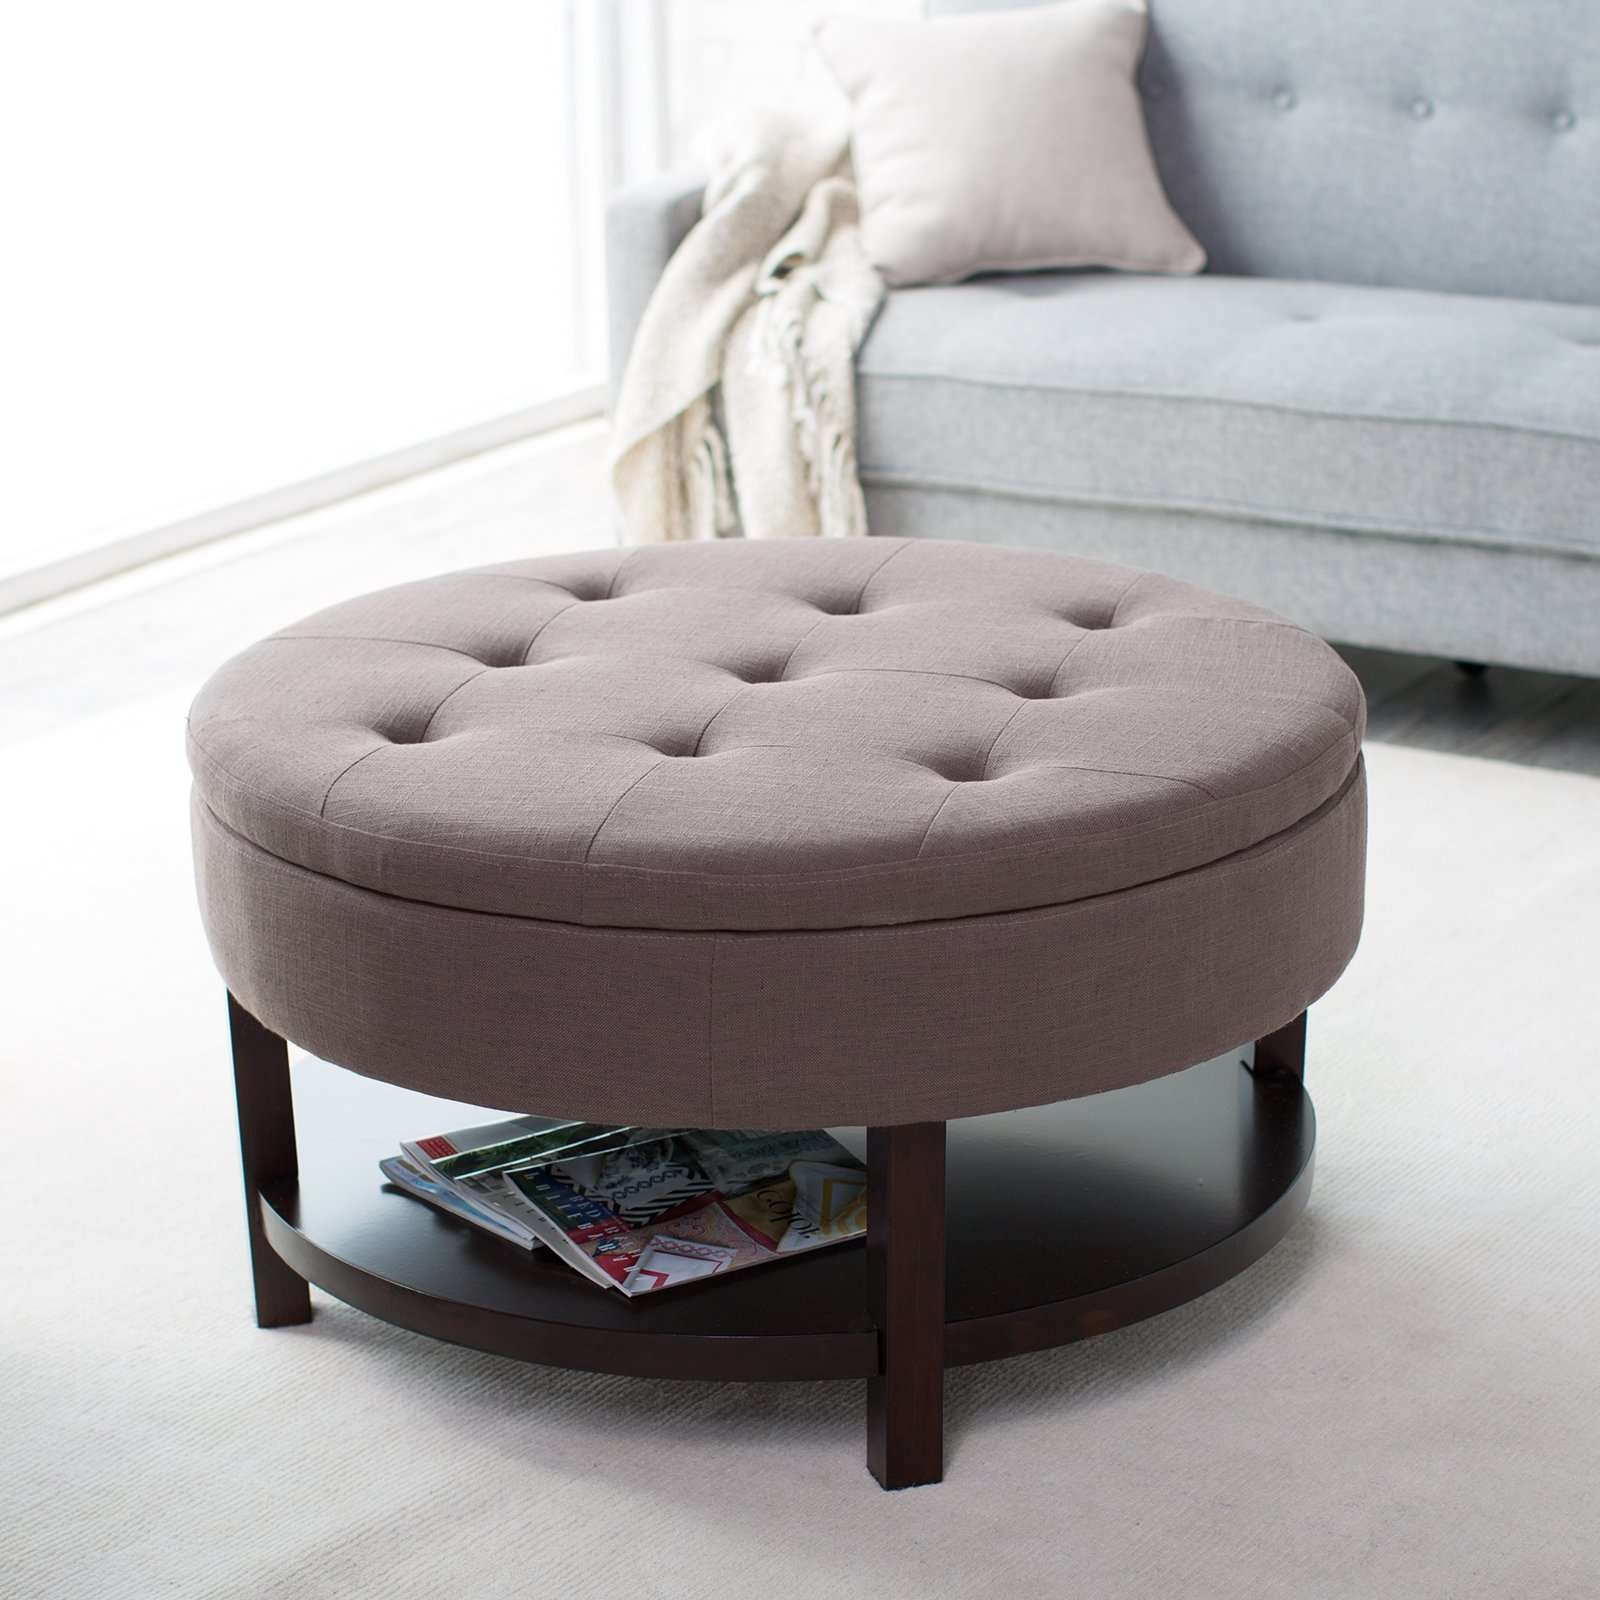 Popular Purple Ottoman Coffee Tables With Regard To Living Room : Living Room Furniture Coffee Table Glass And Small (View 5 of 20)